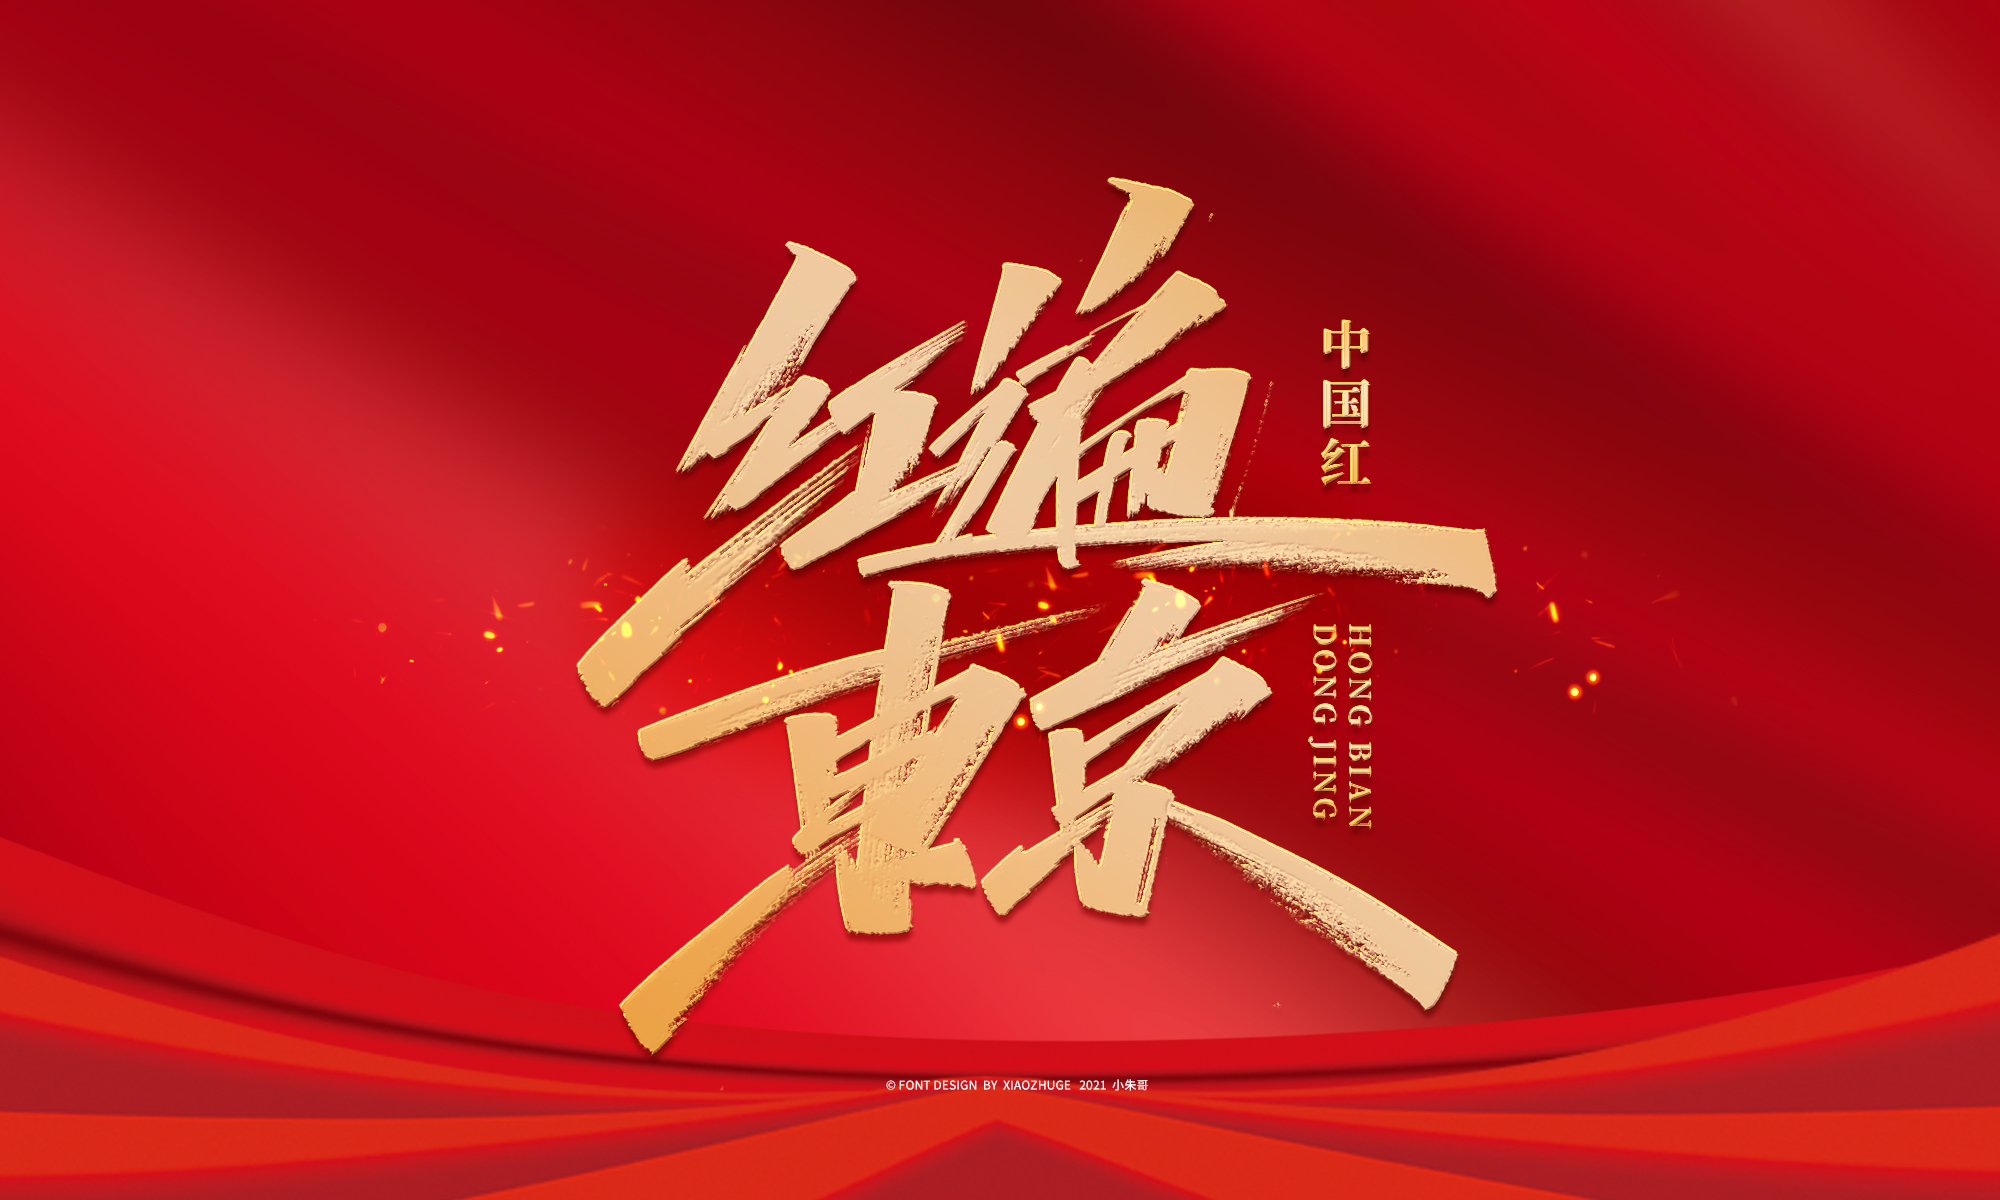 22P Collection of the latest Chinese font design schemes in 2021 #.489